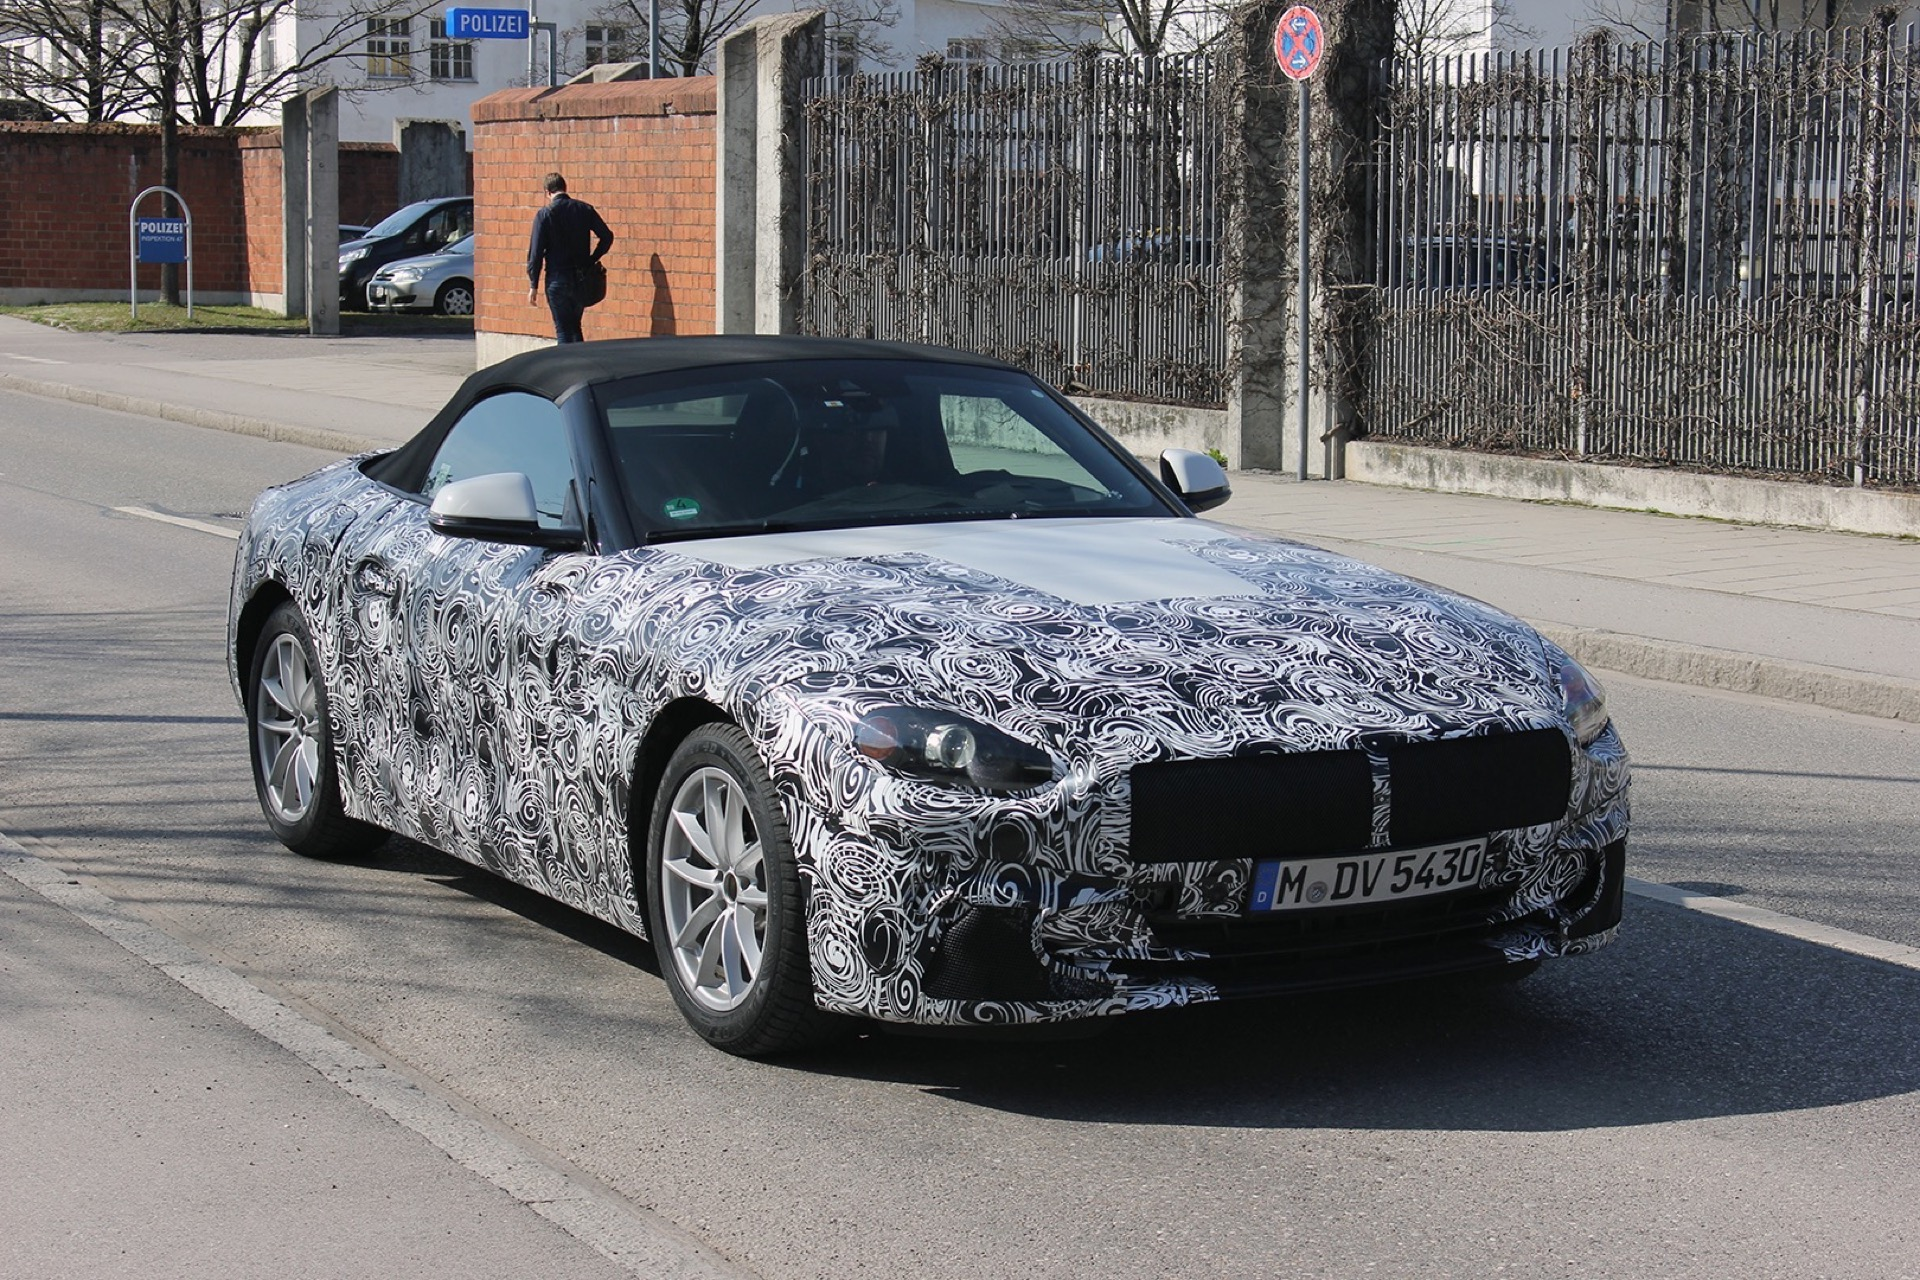 2019 Bmw Z4 Spyshots Confirm Manual Gearbox Will Be Available